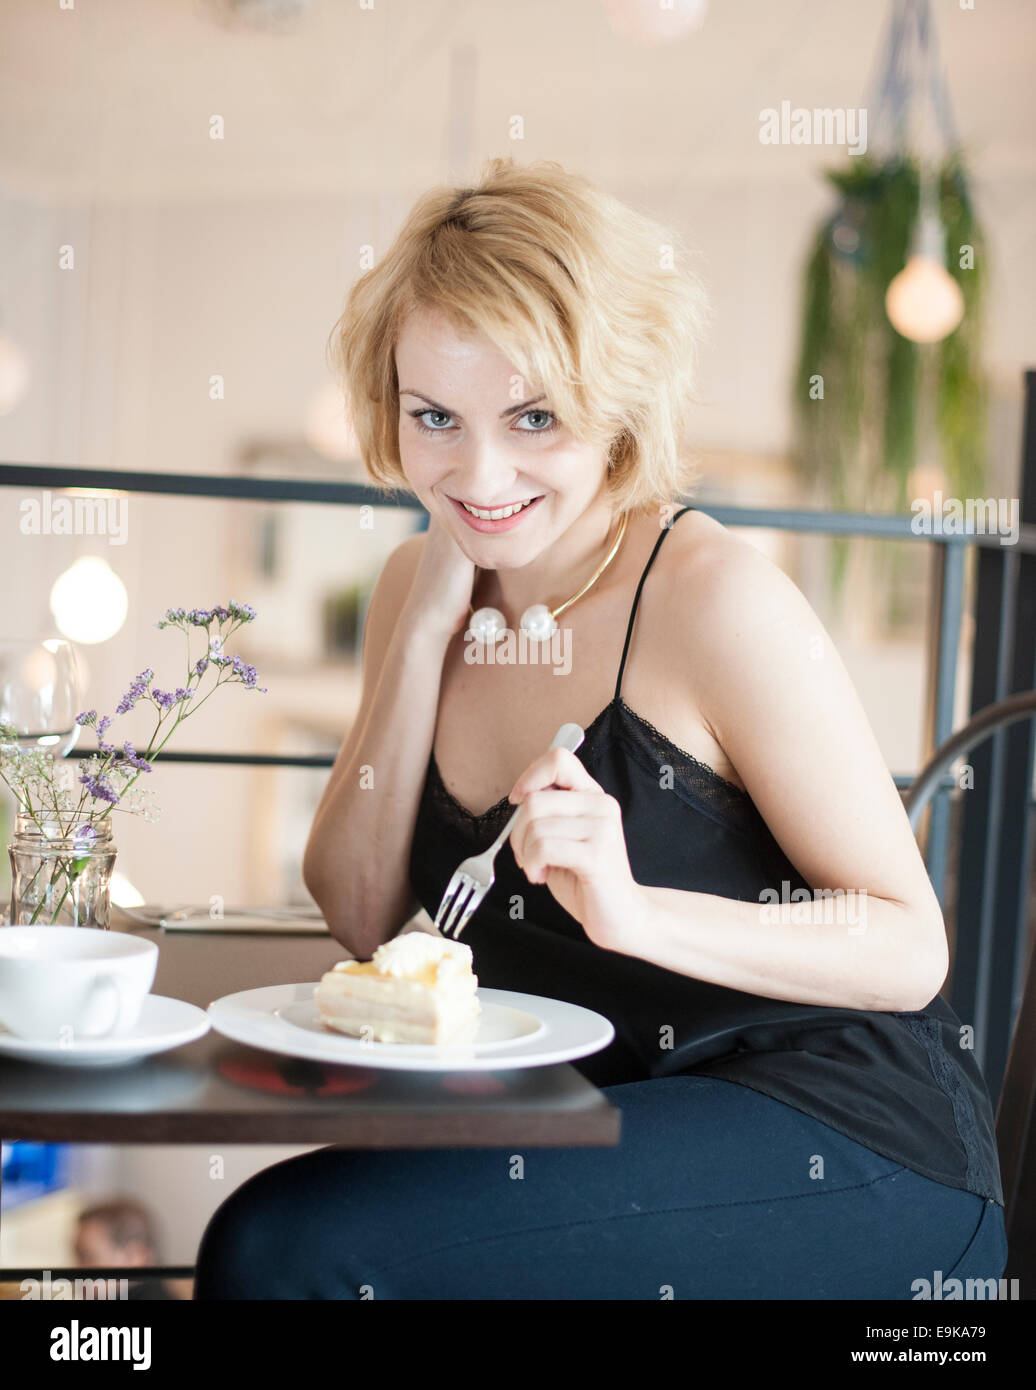 Portrait of happy young woman eating cake at cafe Stock Photo